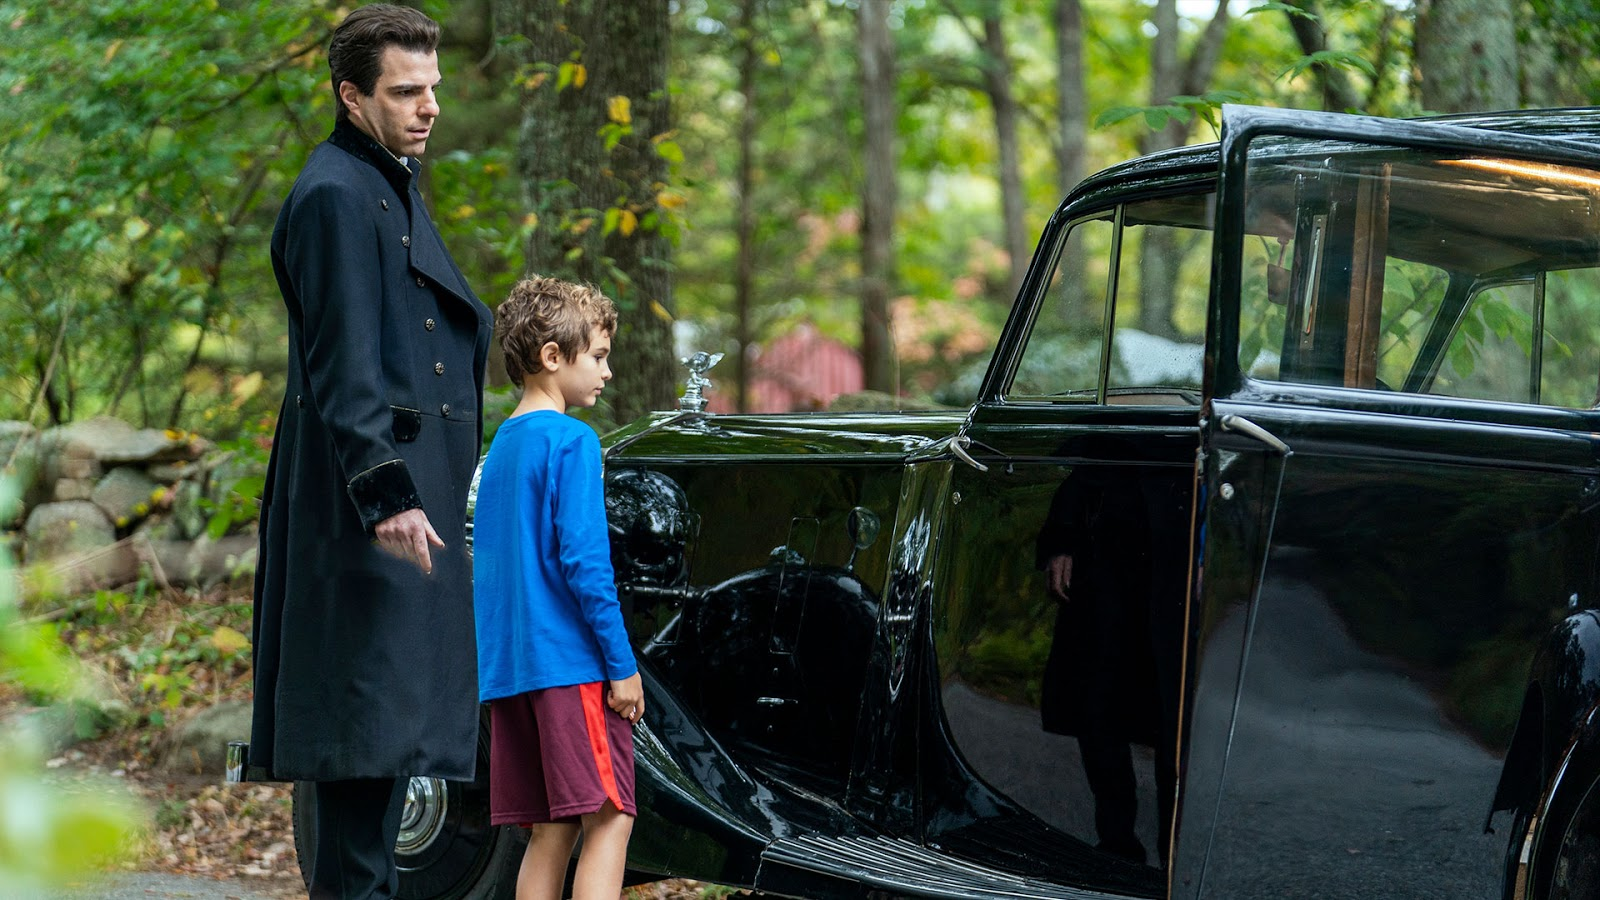 Jason David is Wayne McQueen and Zachary Quinto is Charlie Manx | NOS4A2 The Night Road | Season 2 episode 3